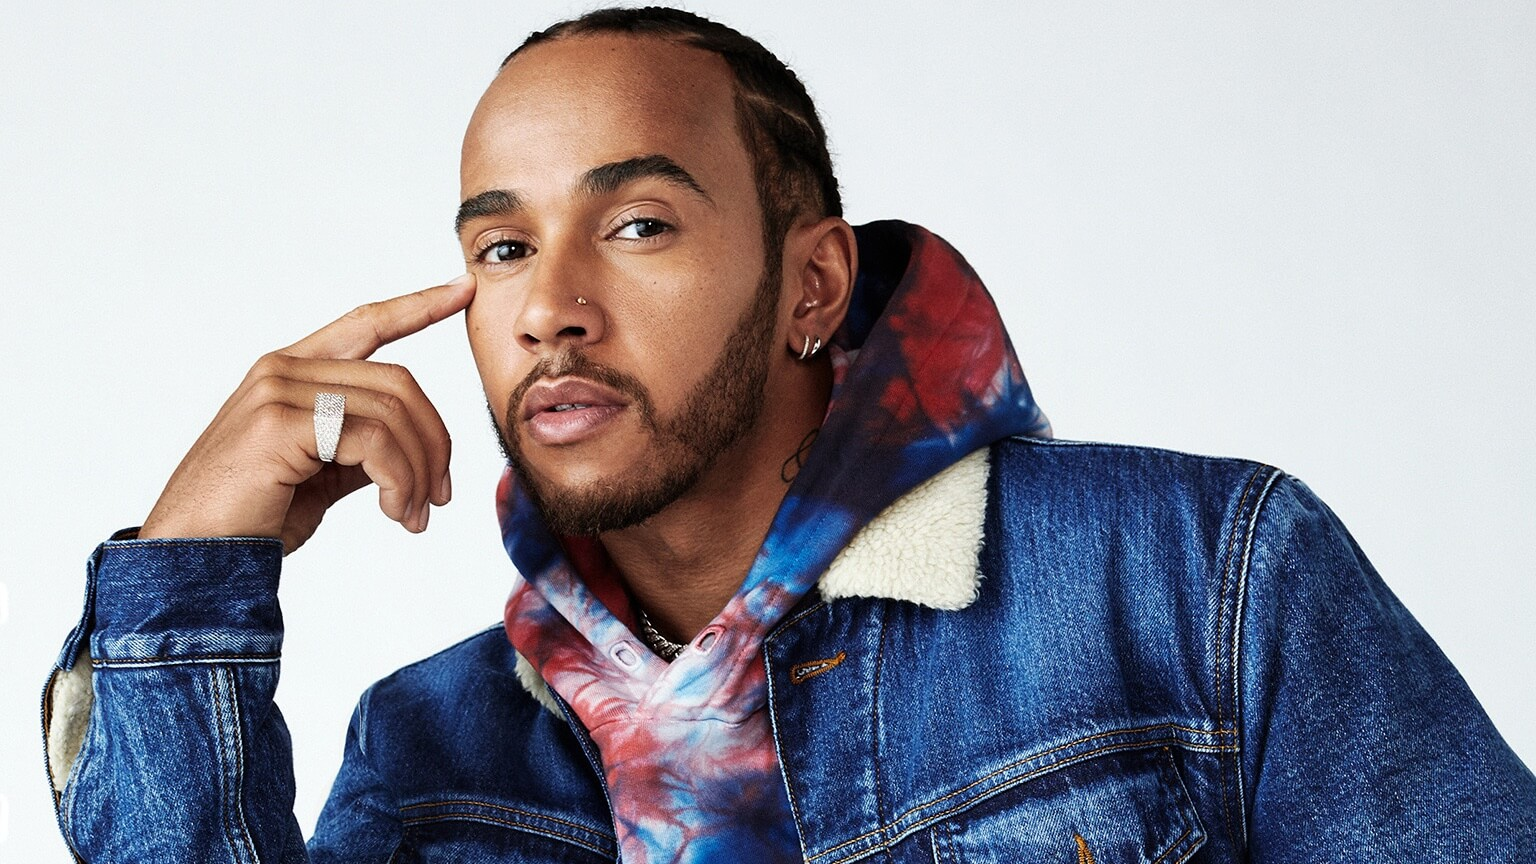 Why Is F1 Driver Lewis Hamilton Vegan?